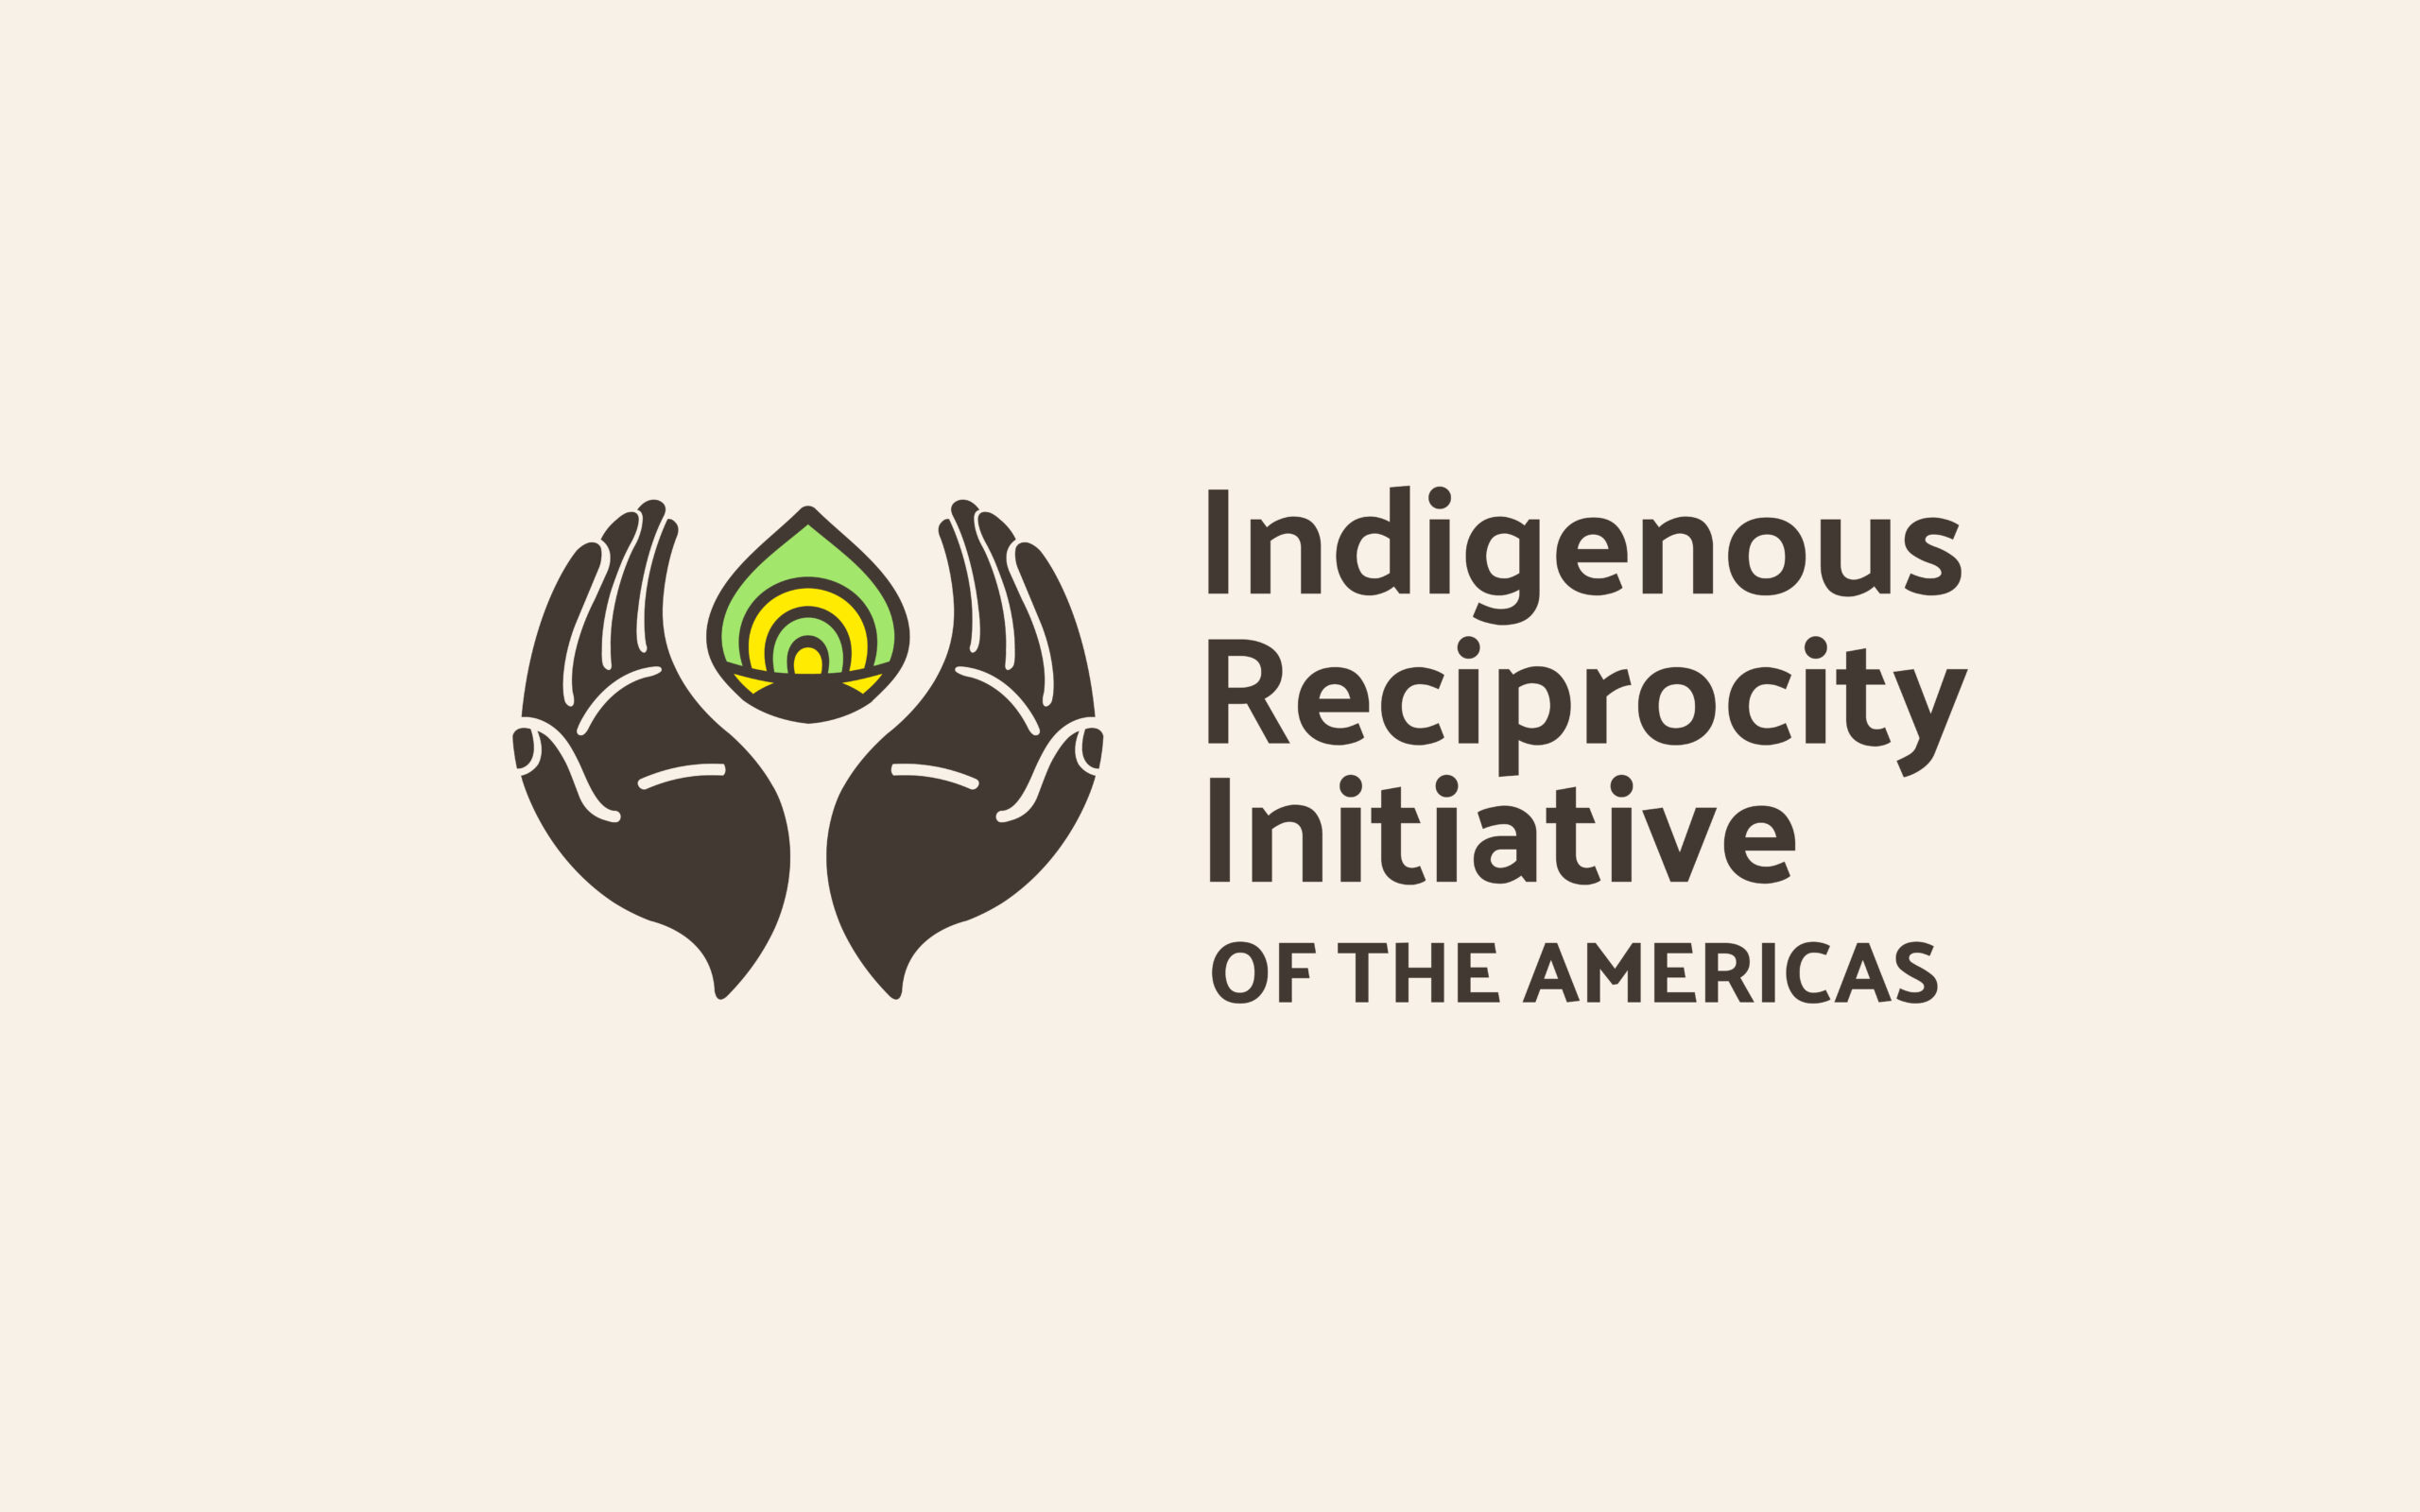 Indigenous Reciprocity Initiative of the Americas